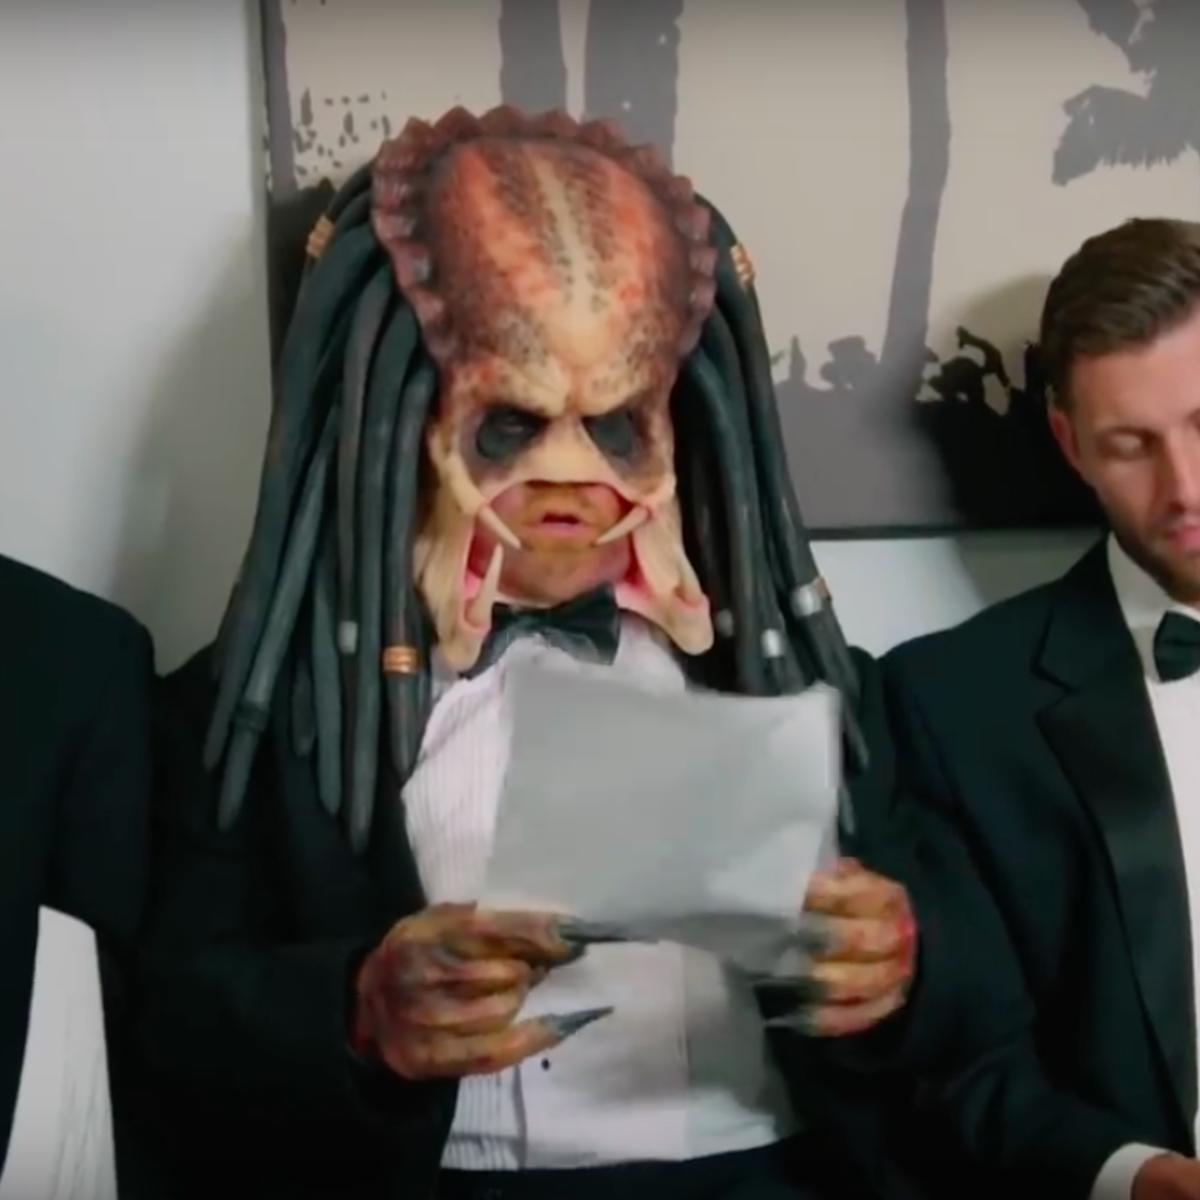 the predator auditions for james bond in latest james corden sketch